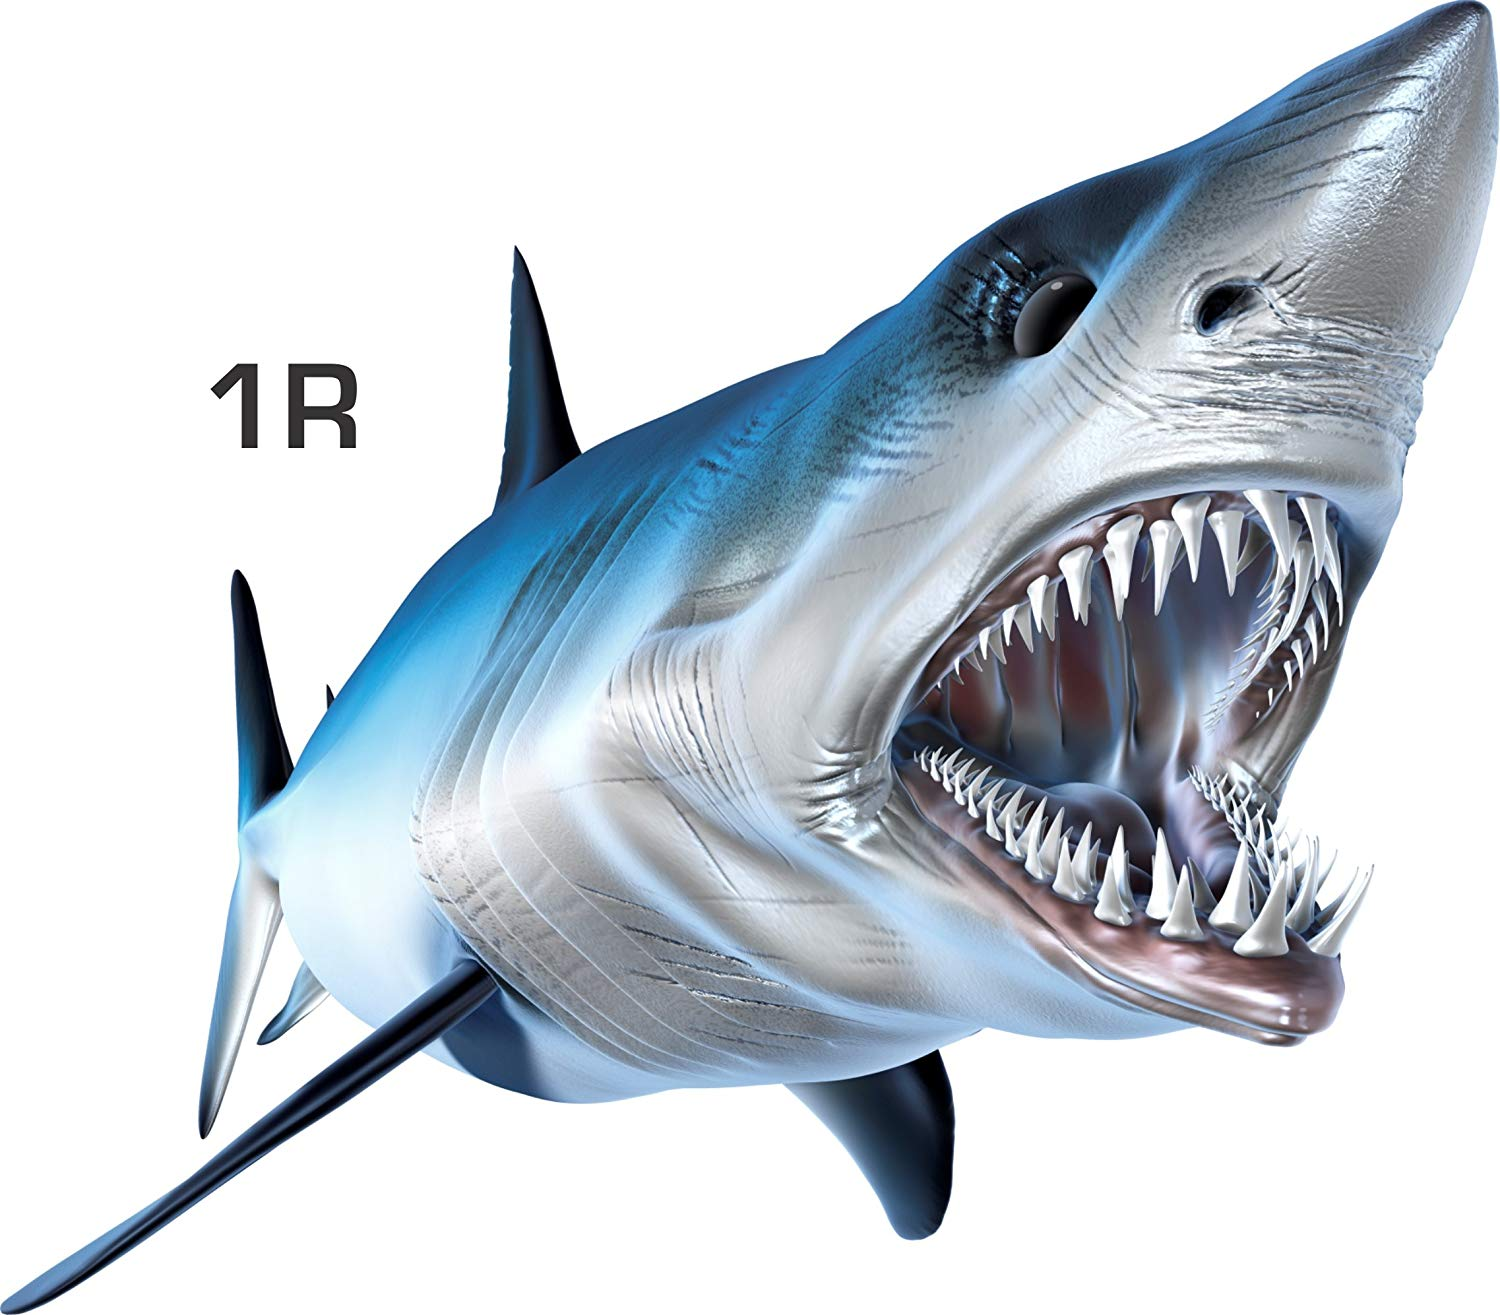 Etc Mako Shark Beautiful Fish Decal for Your Boat Many Sizes and Styles Available 12 to 40 Vehicle